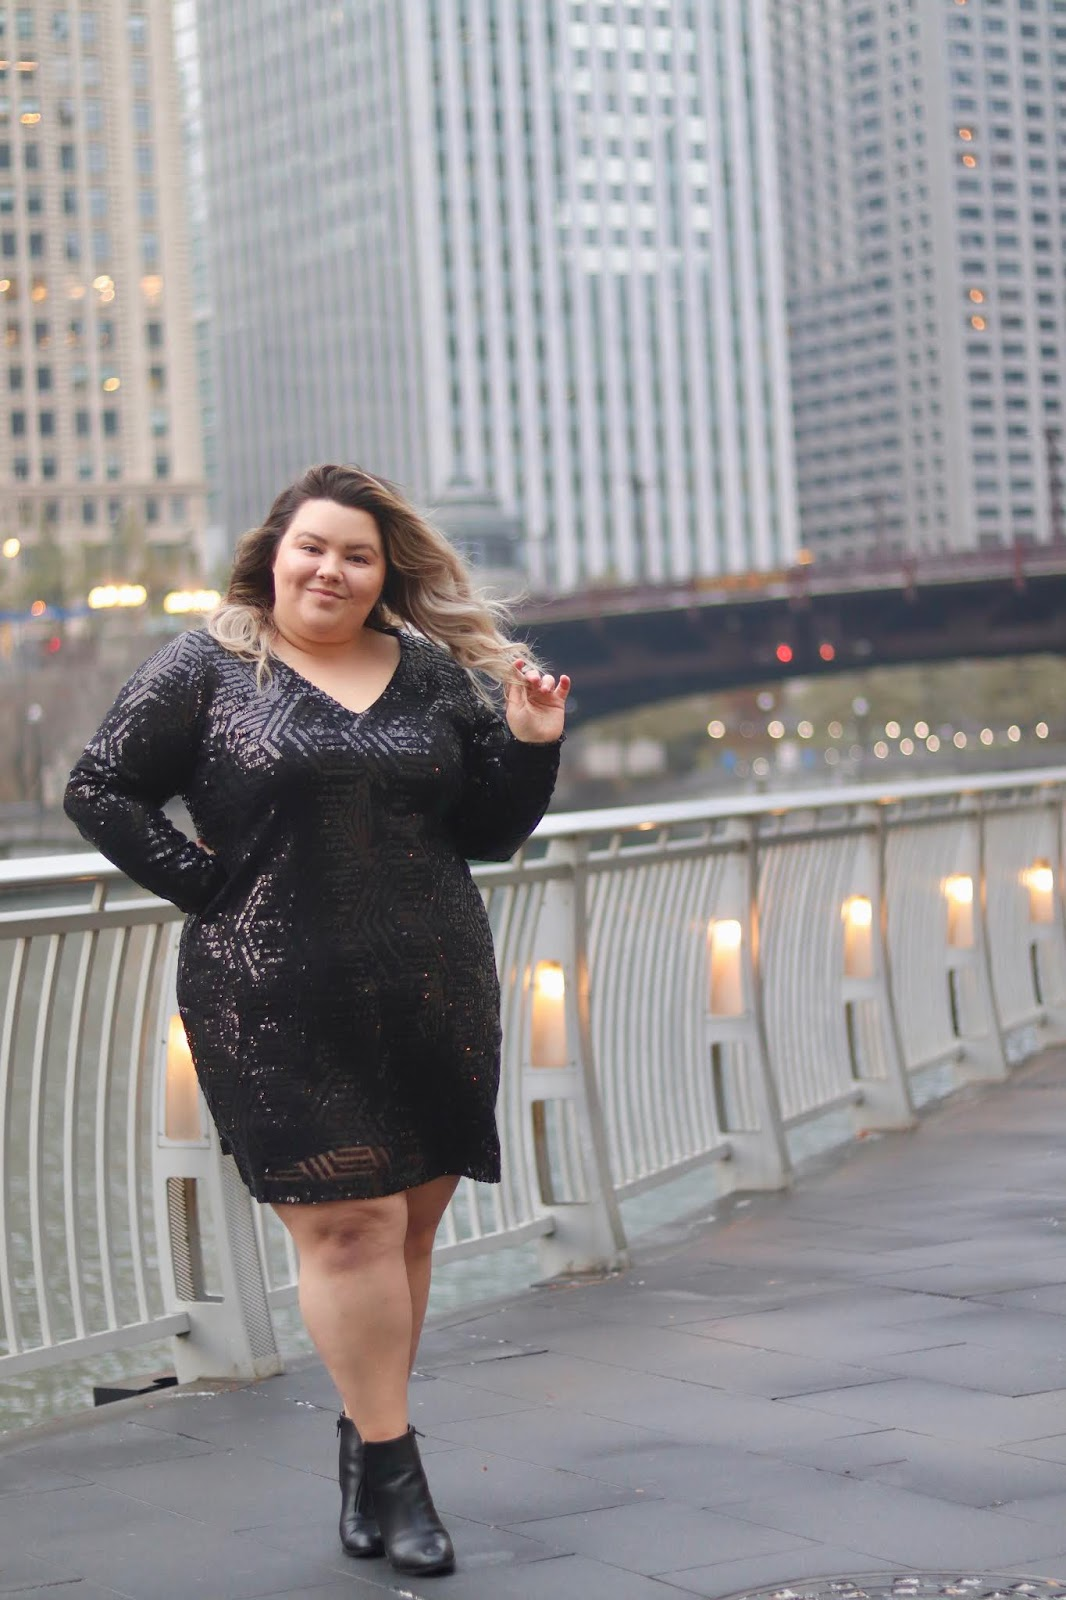 Chicago Plus Size Petite Fashion Blogger, influencer, YouTuber, and model Natalie Craig, of Natalie in the City, reviews CoEdition's Try for Free clothing line and City Chic Dresses.